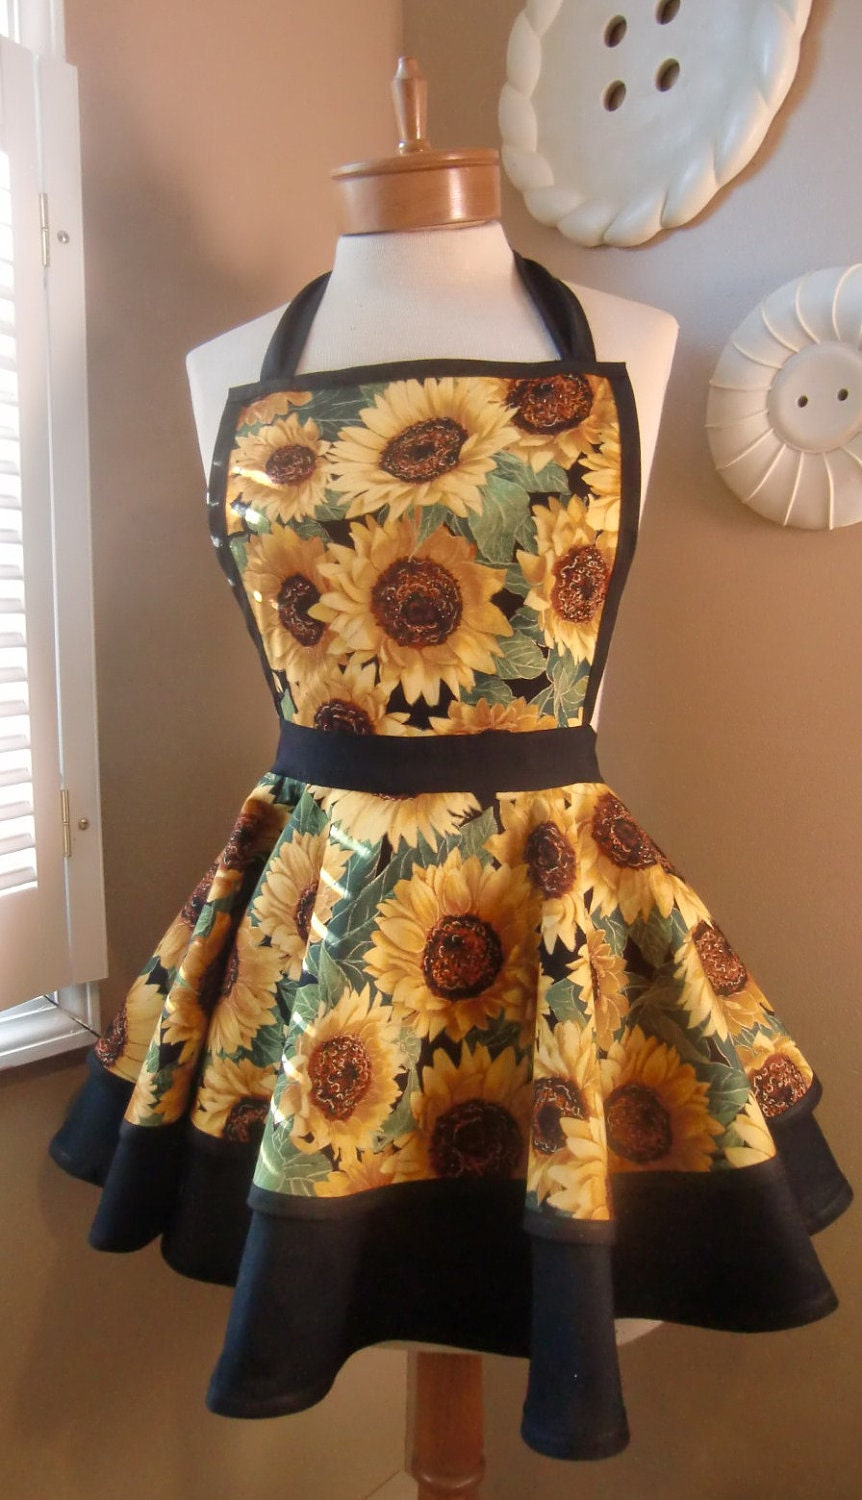 Sunflower Print Womans Retro Apron With Tiered Skirt and Bib